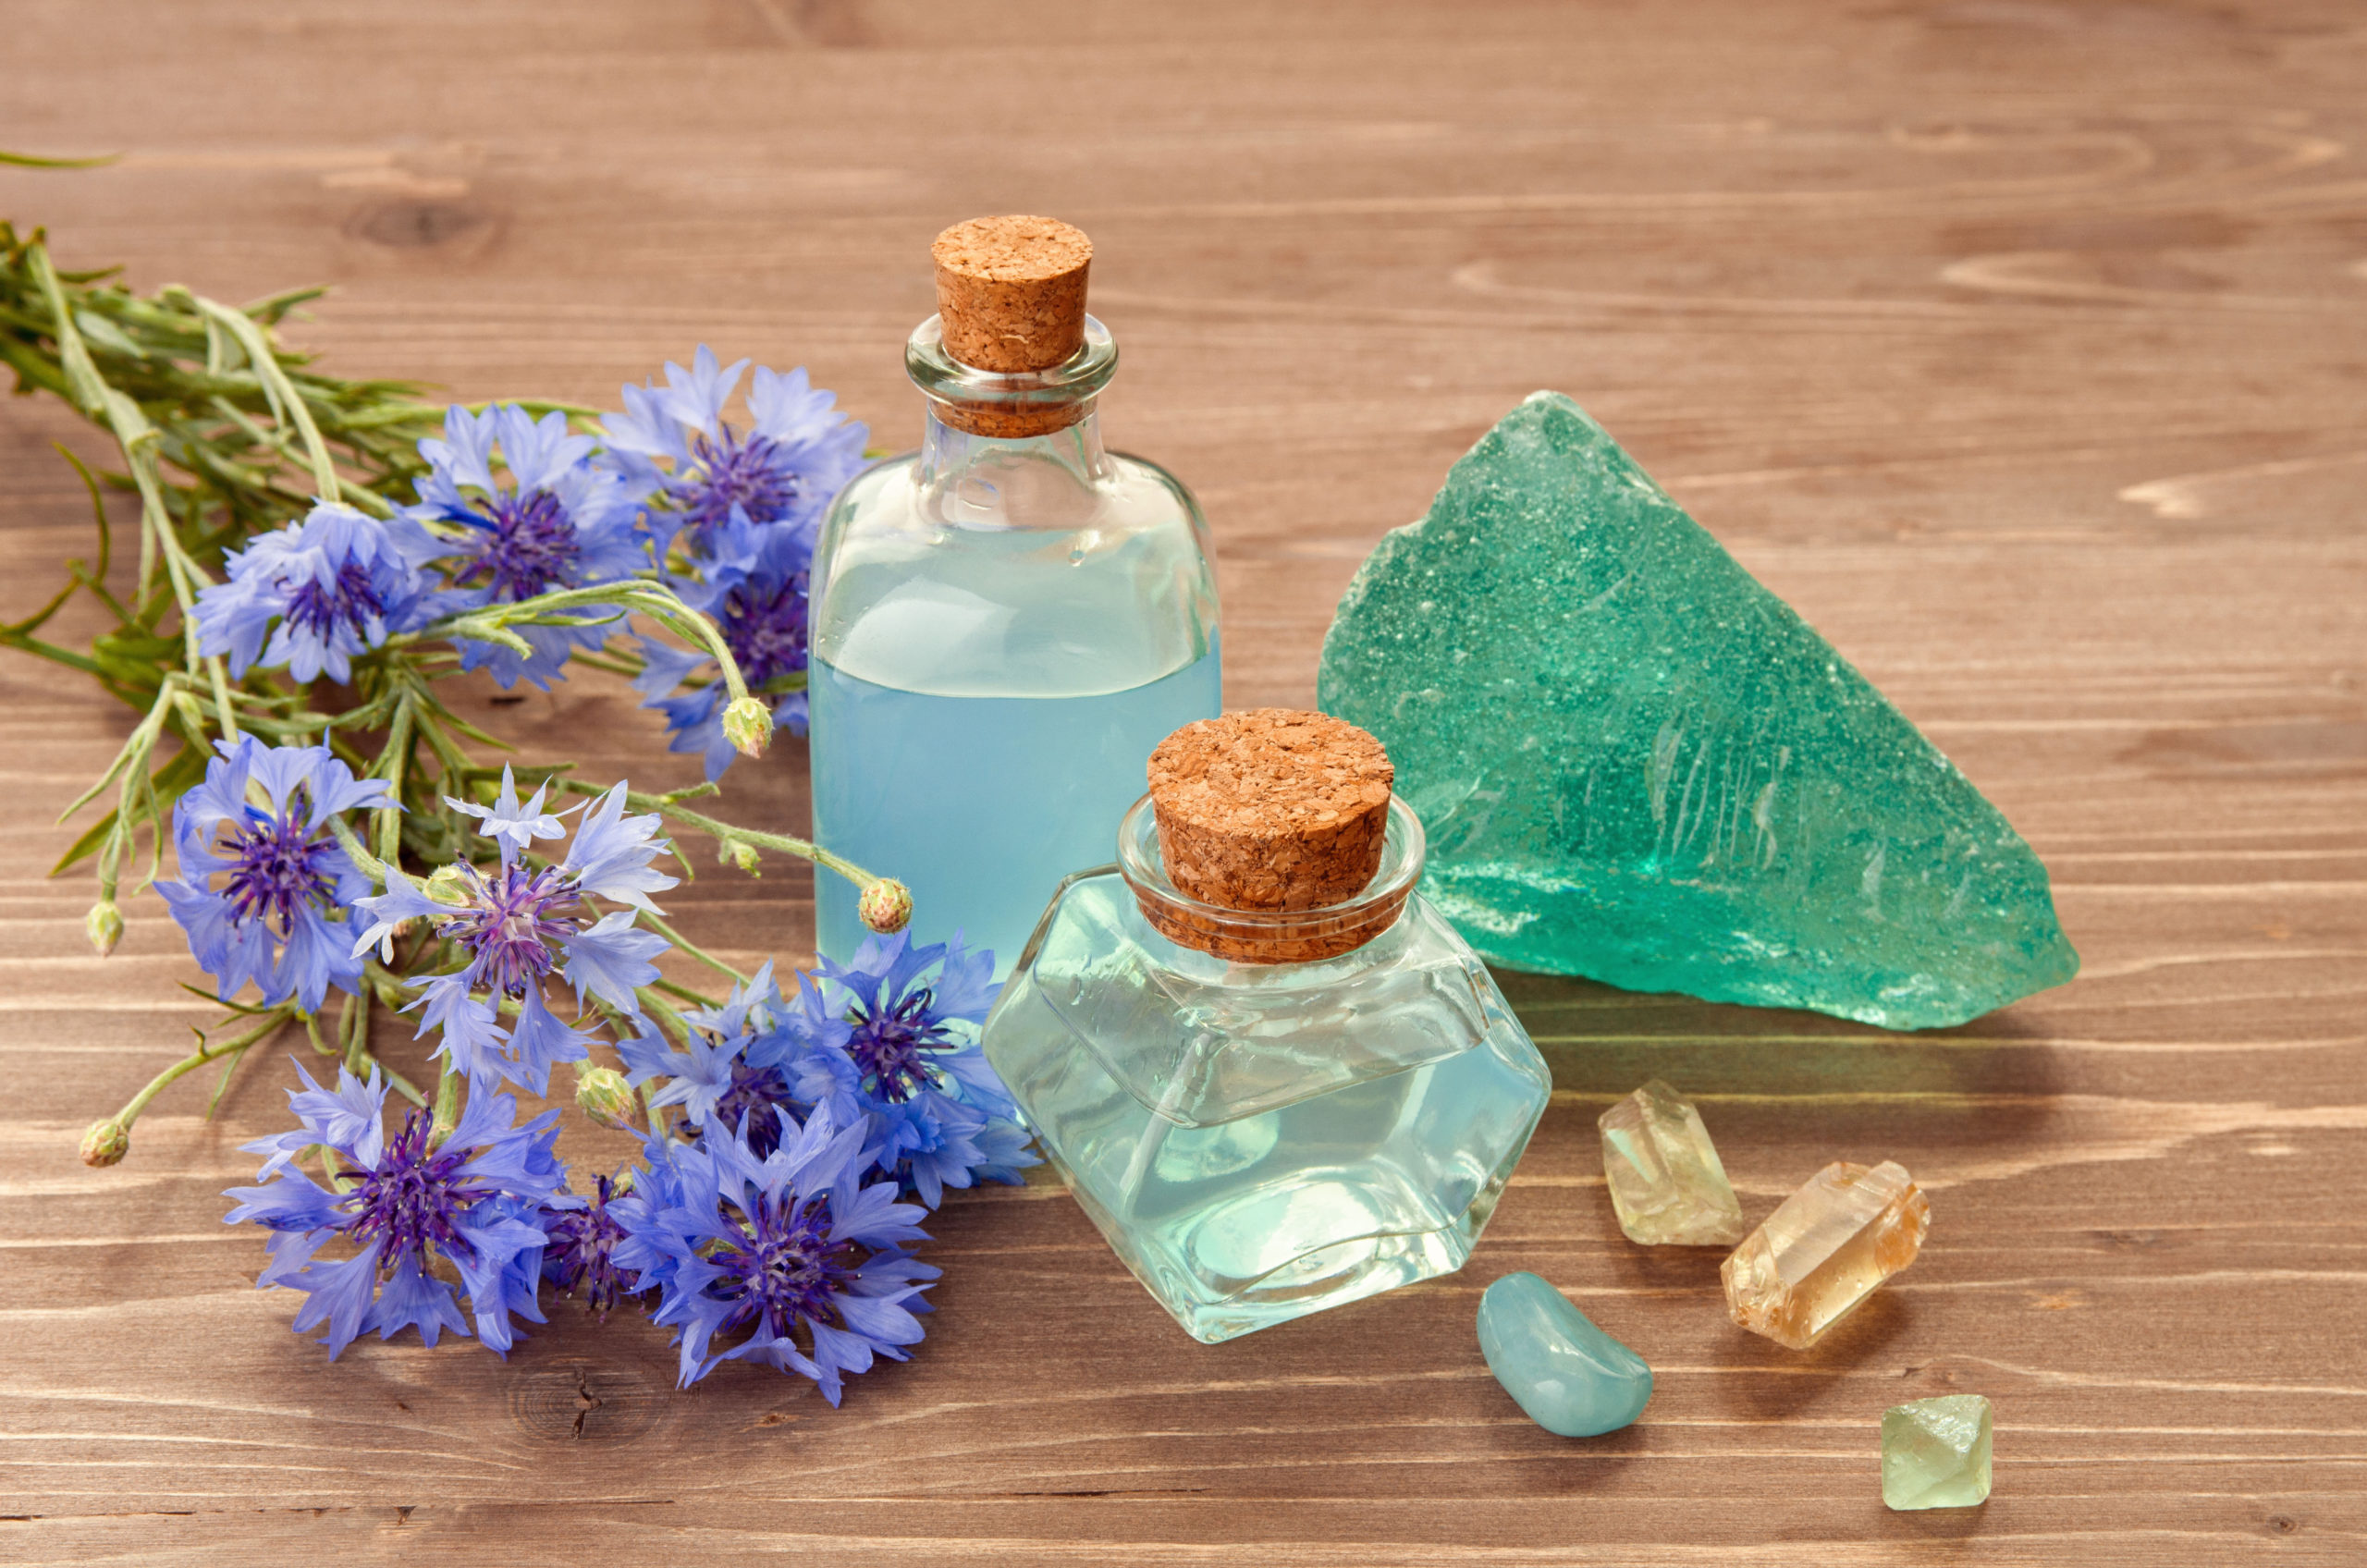 flowers, minerals, and tonics representing mineral blend IV Therapy